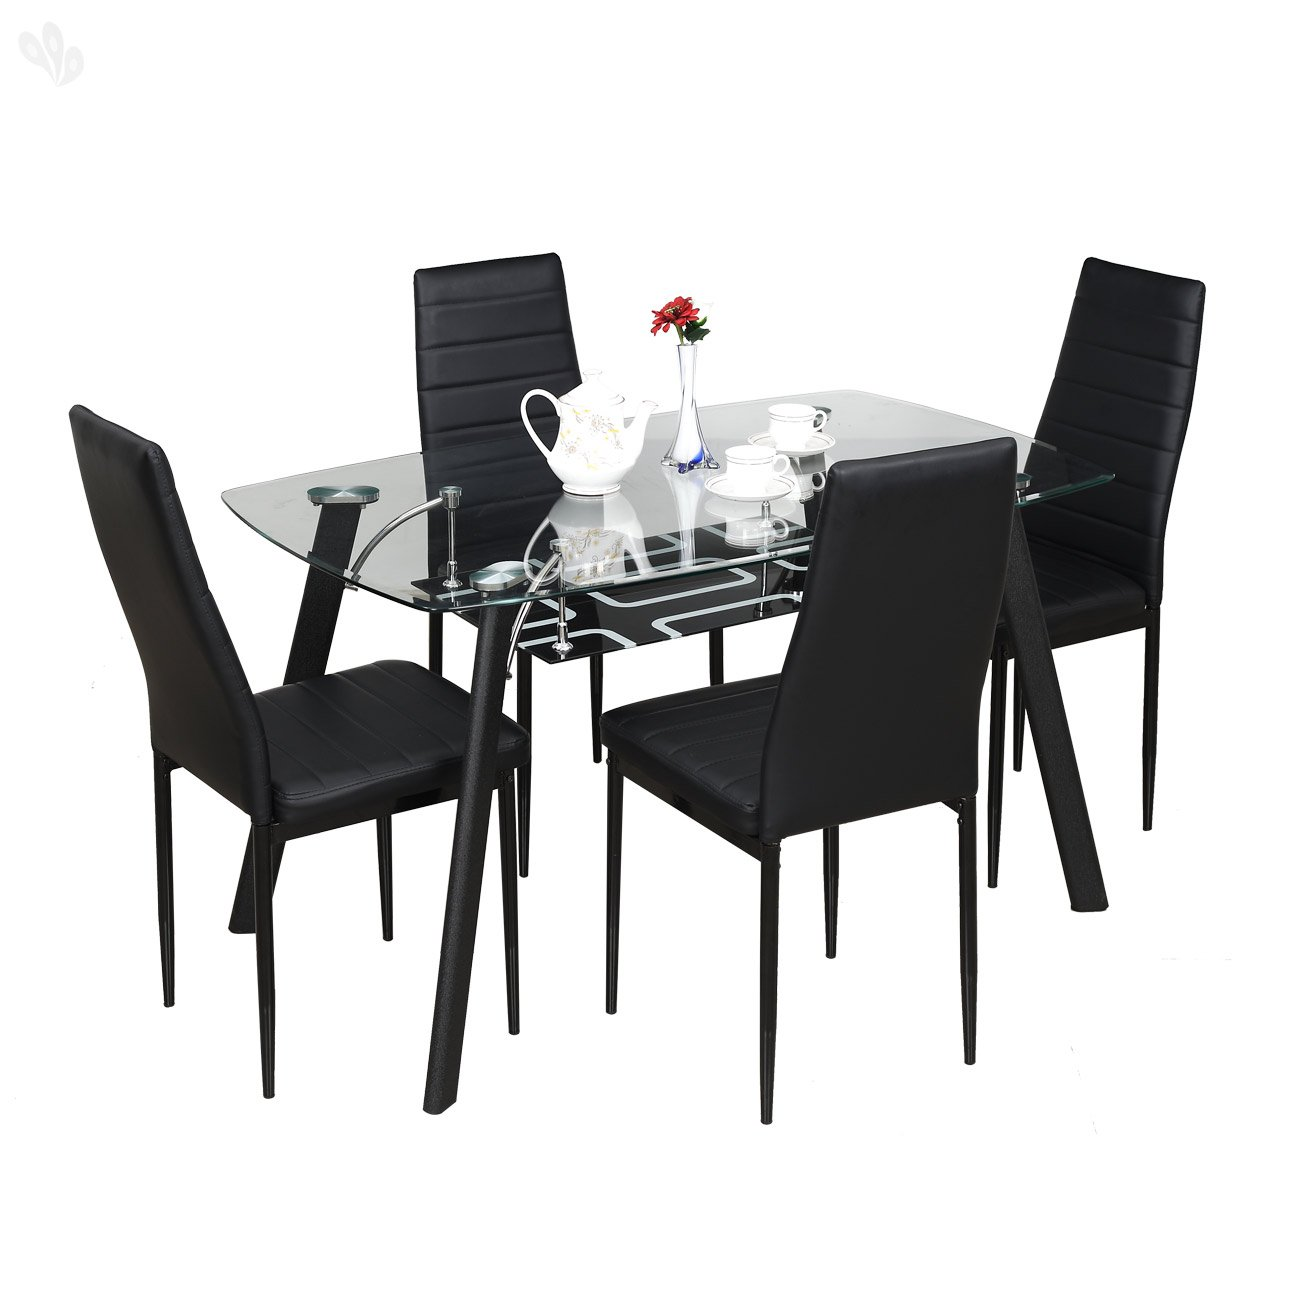 Royal oak milan four seater dining table set black for Dining table set 4 seater